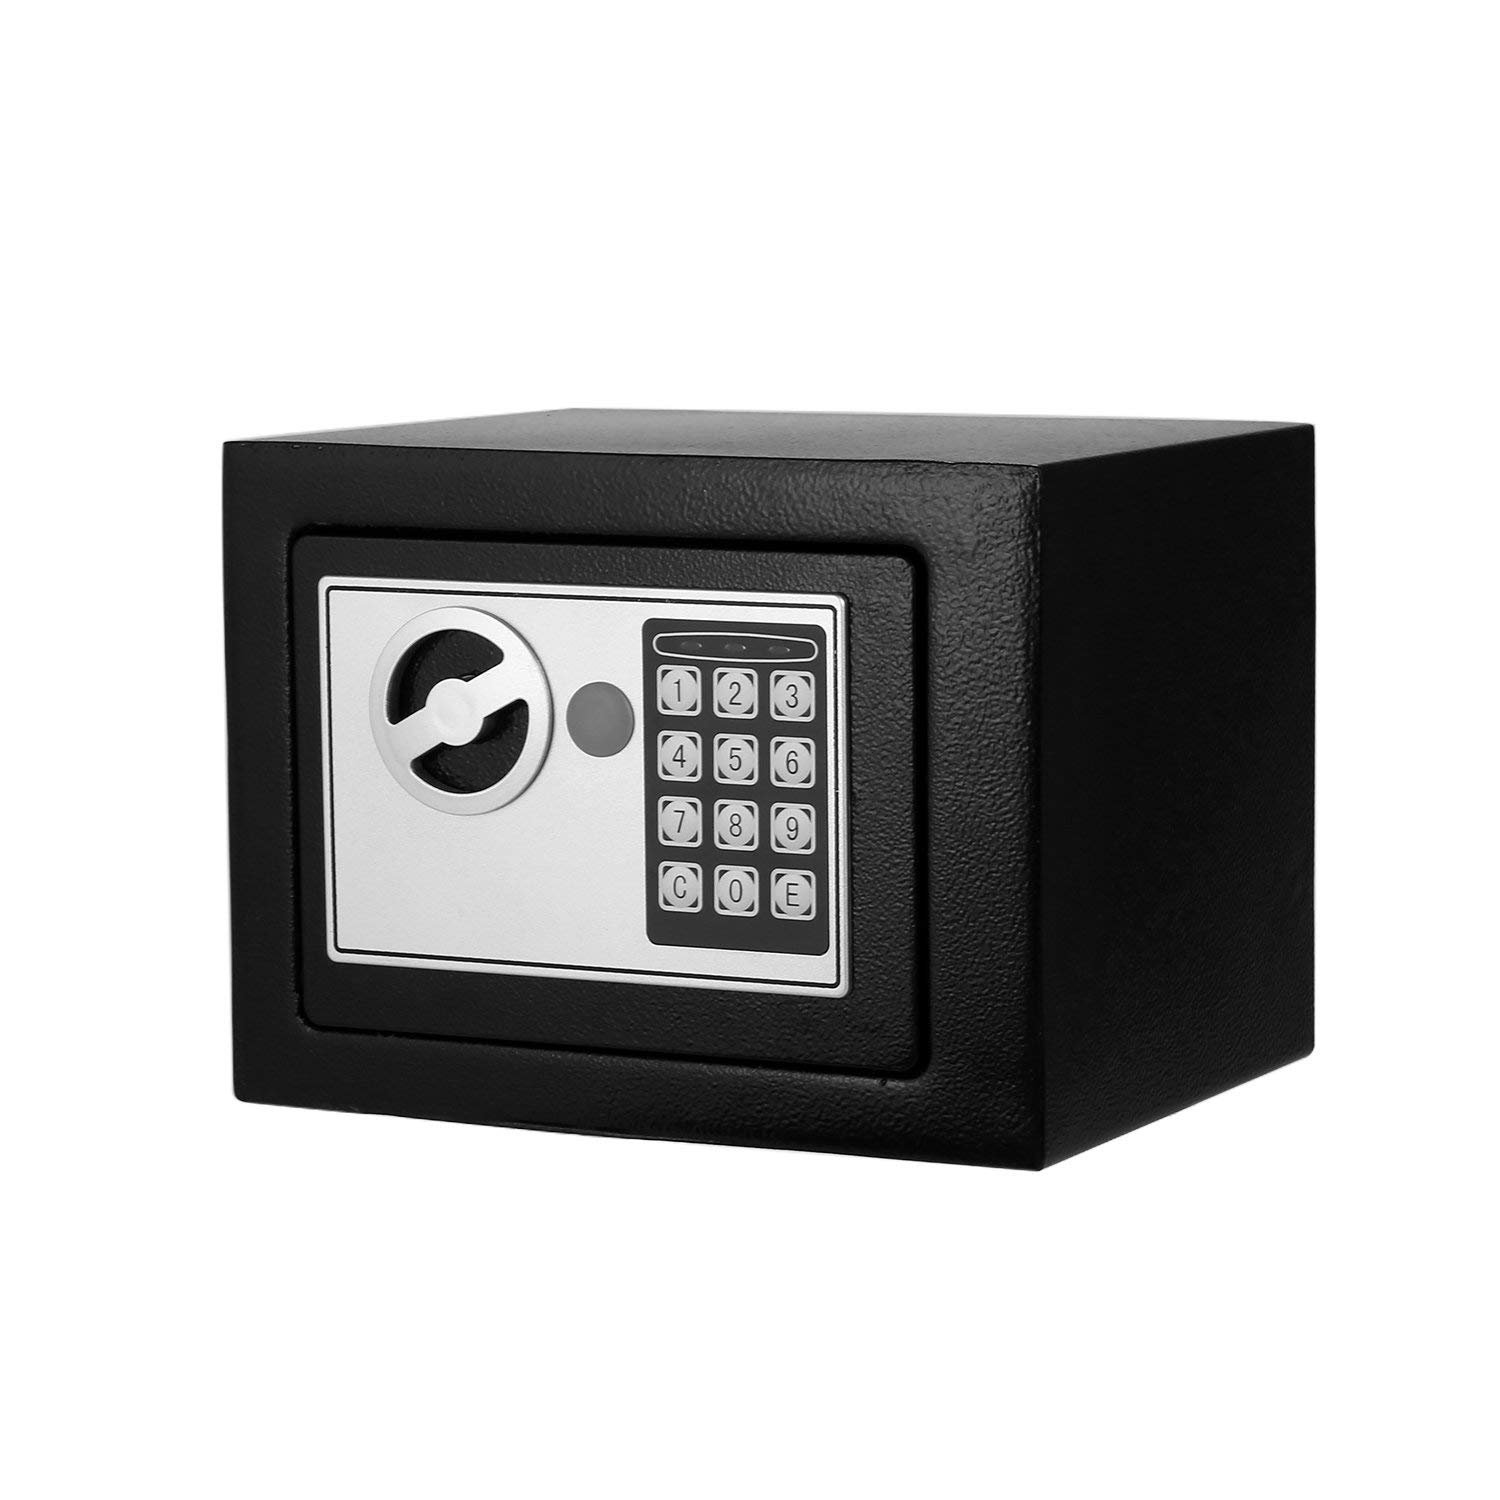 Hosmat Electronic Digital Security Safe Box, Fireproof Wall-Anchoring Safe Deposit Box for Home Office Hotel Business Jewelry Money (Black)